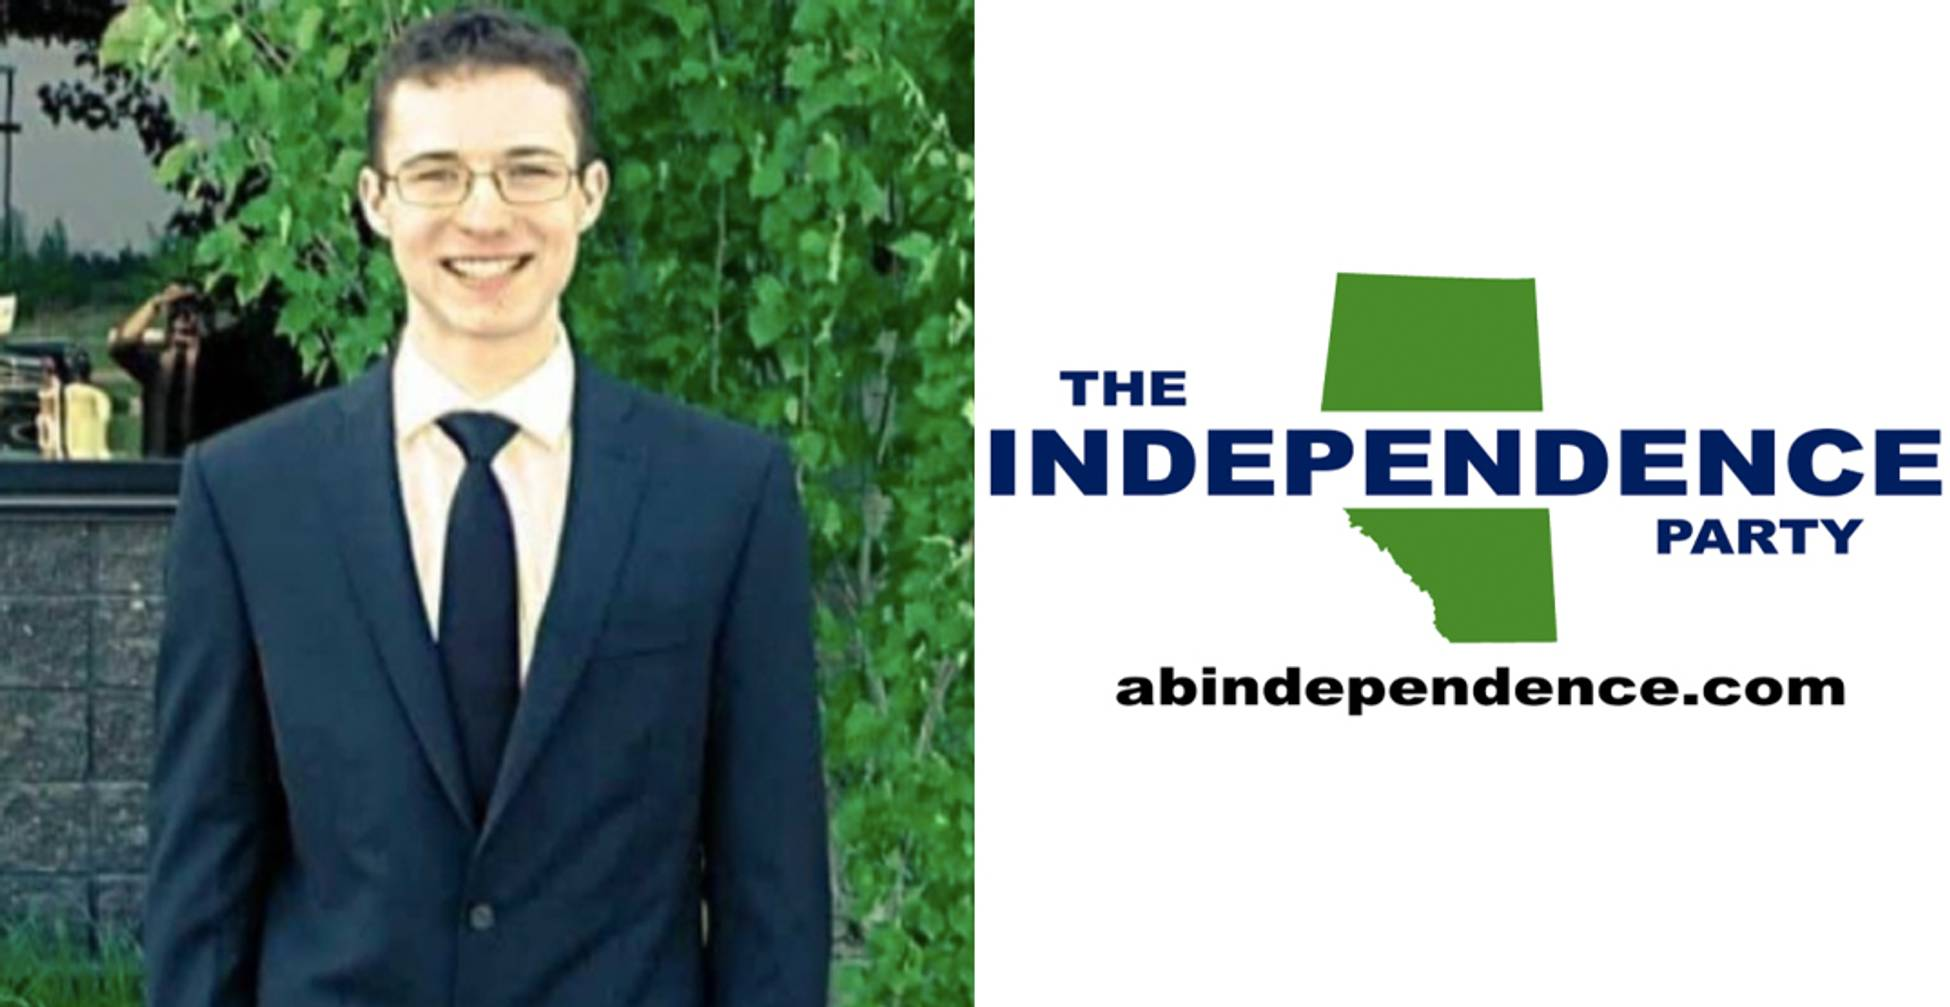 A Stormfront User Is Writing Policy For The Alberta Independence Party